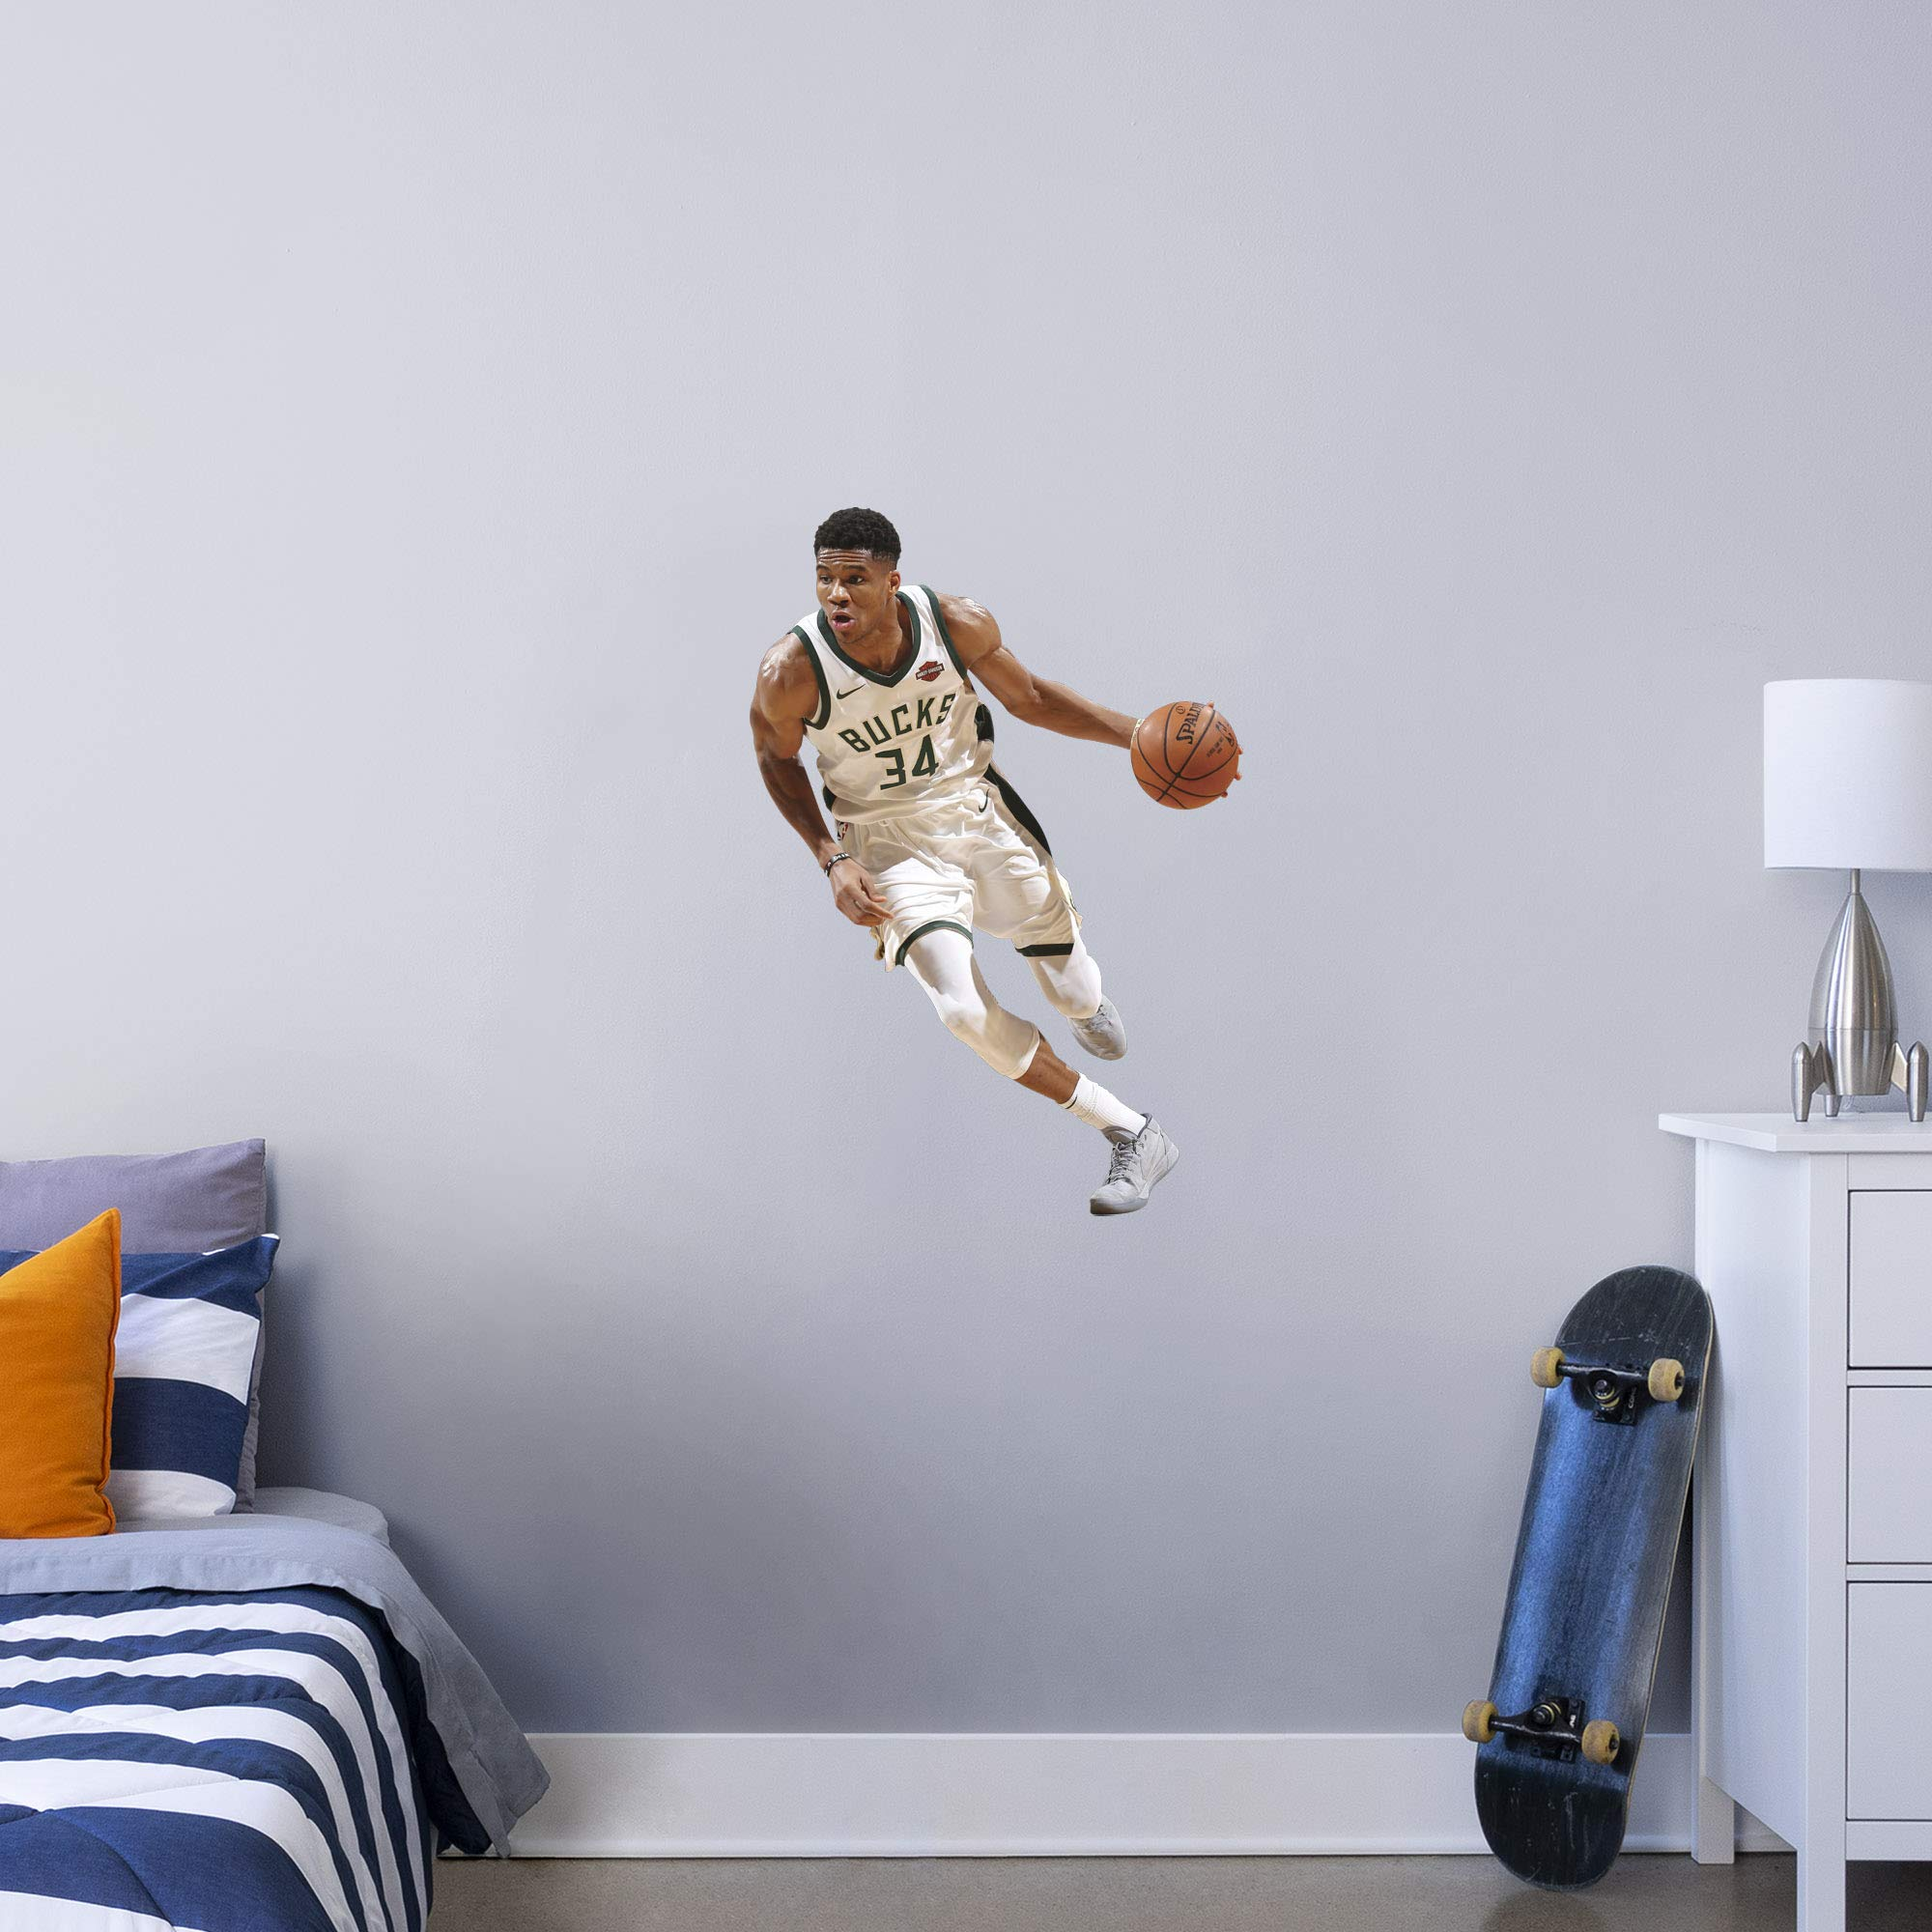 Fathead NBA Milwaukee Bucks Giannis Antetokounmpo Officially Licensed Removable Wall Decal, Multicolor, X-Large - 1900-00312-004 by FATHEAD